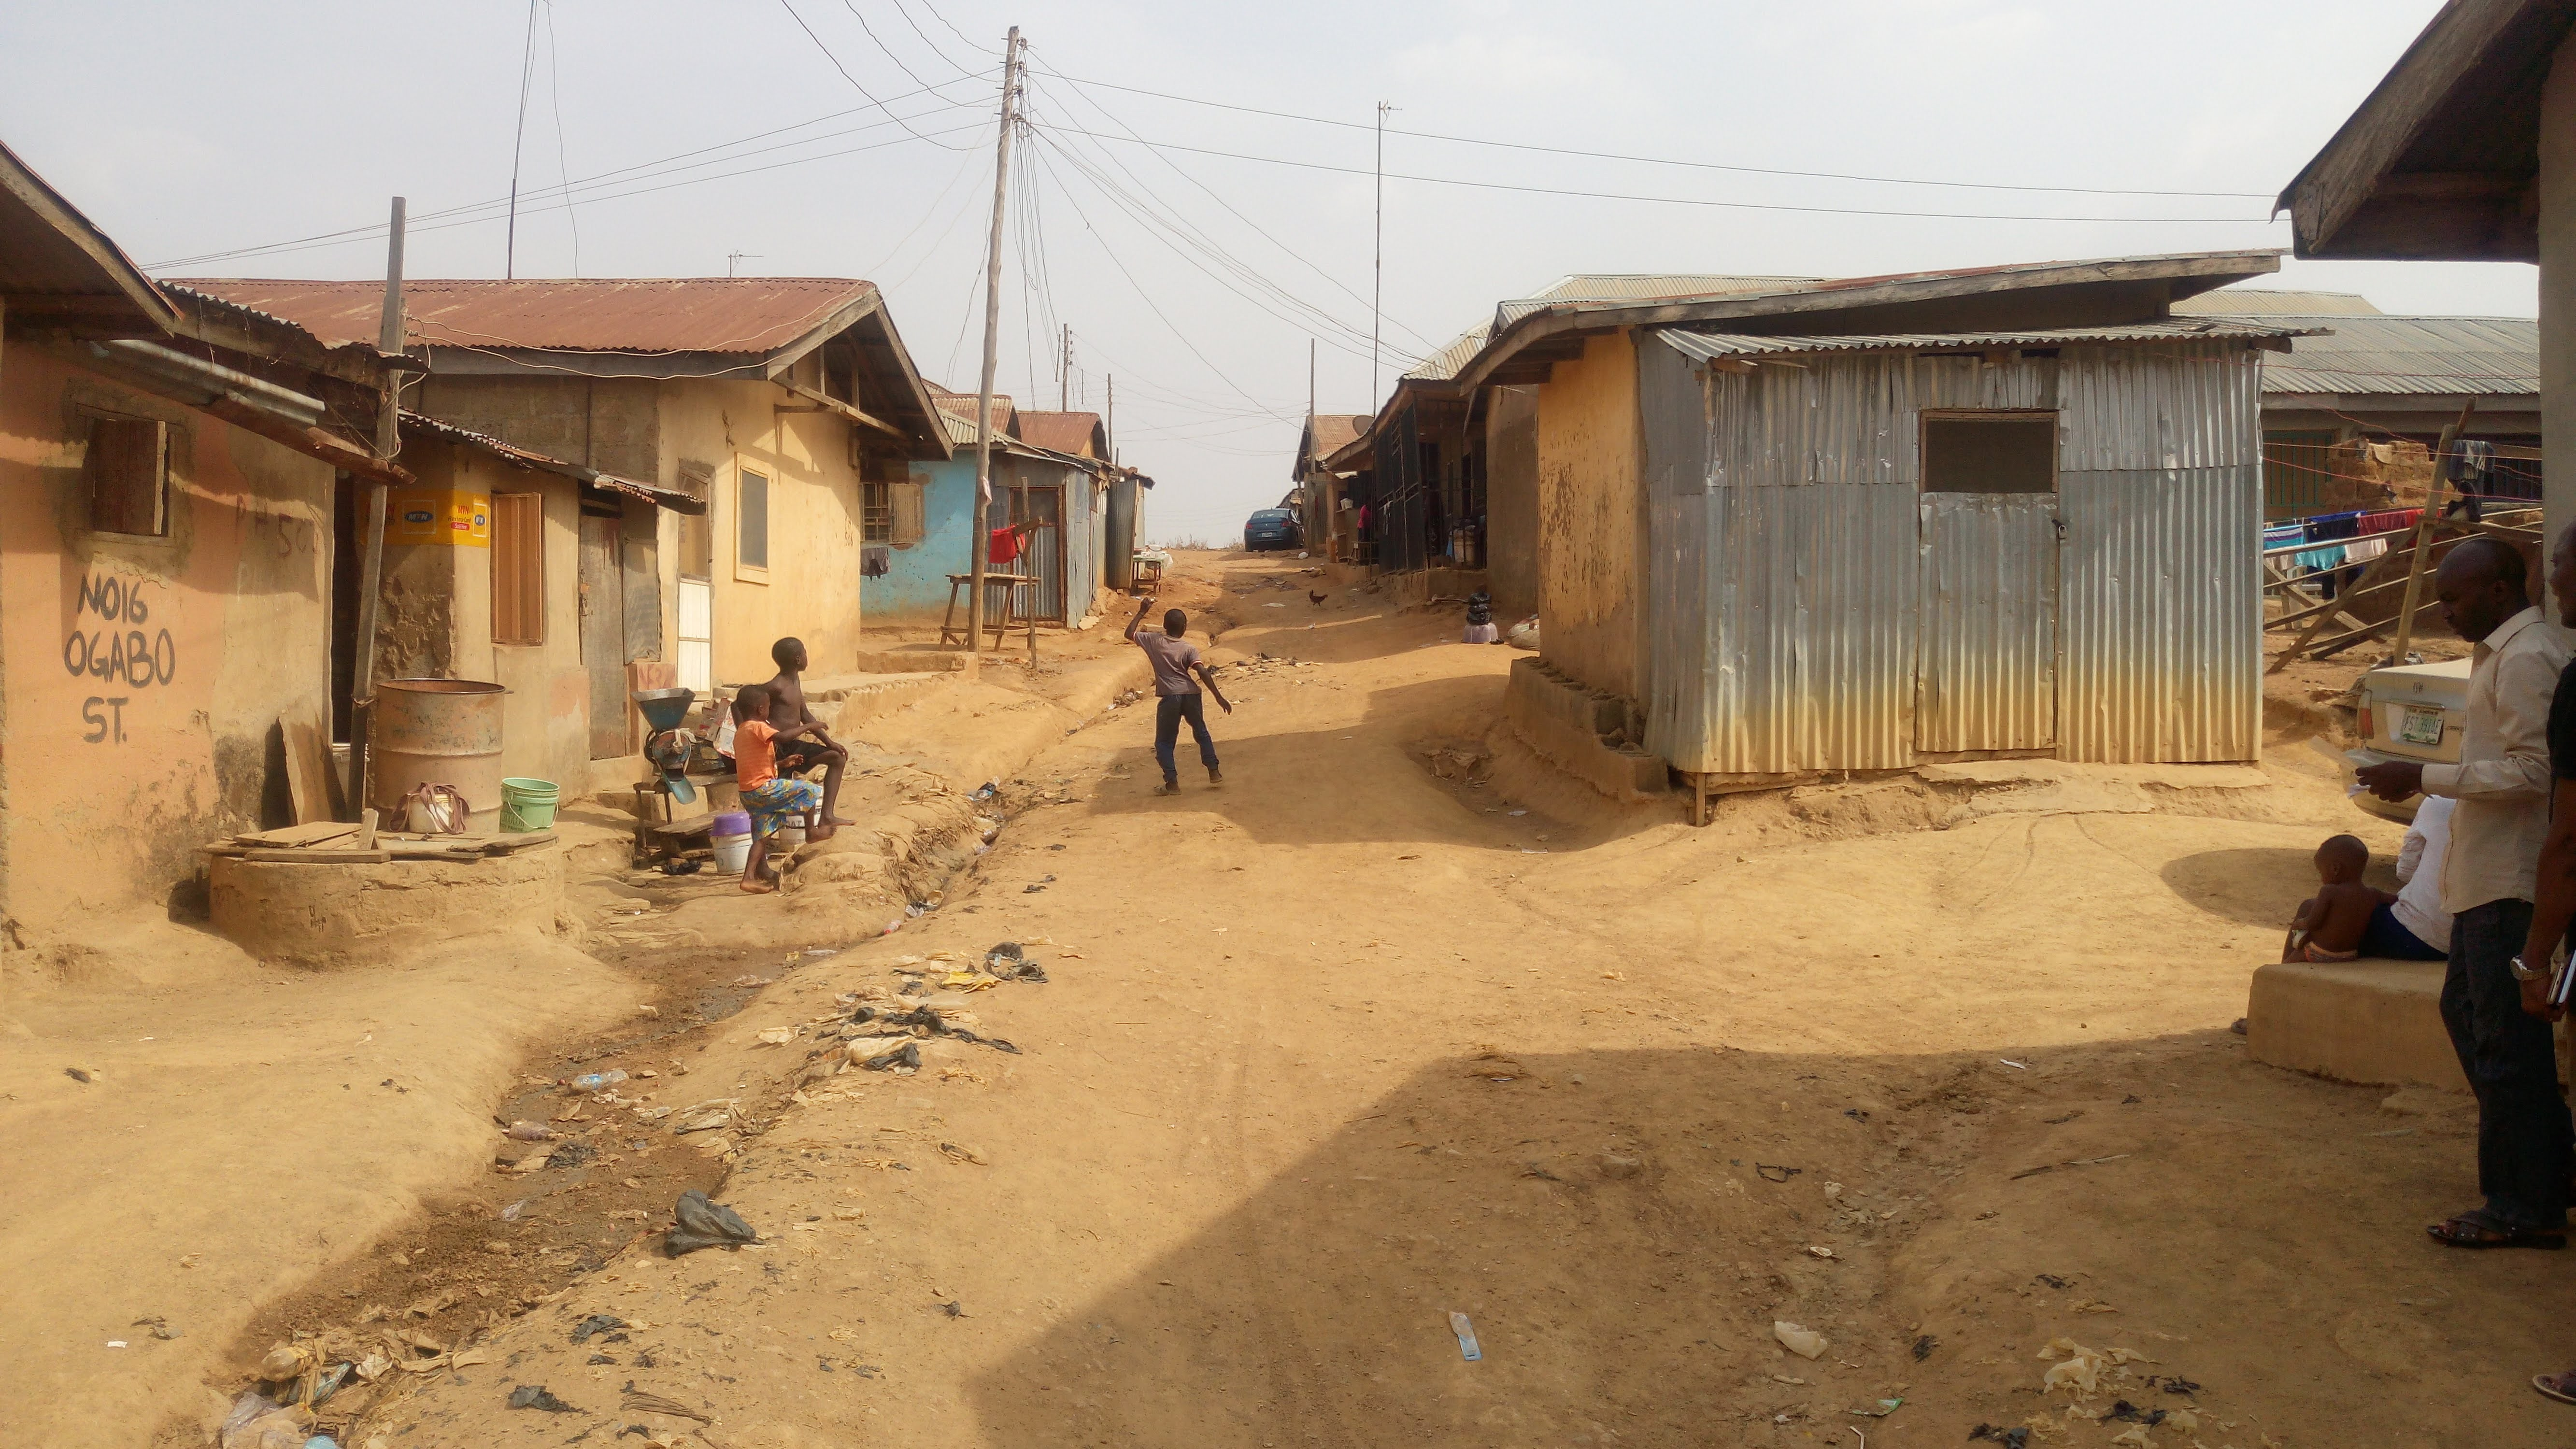 Nigeria's Intimidating, Risky Poverty Figures